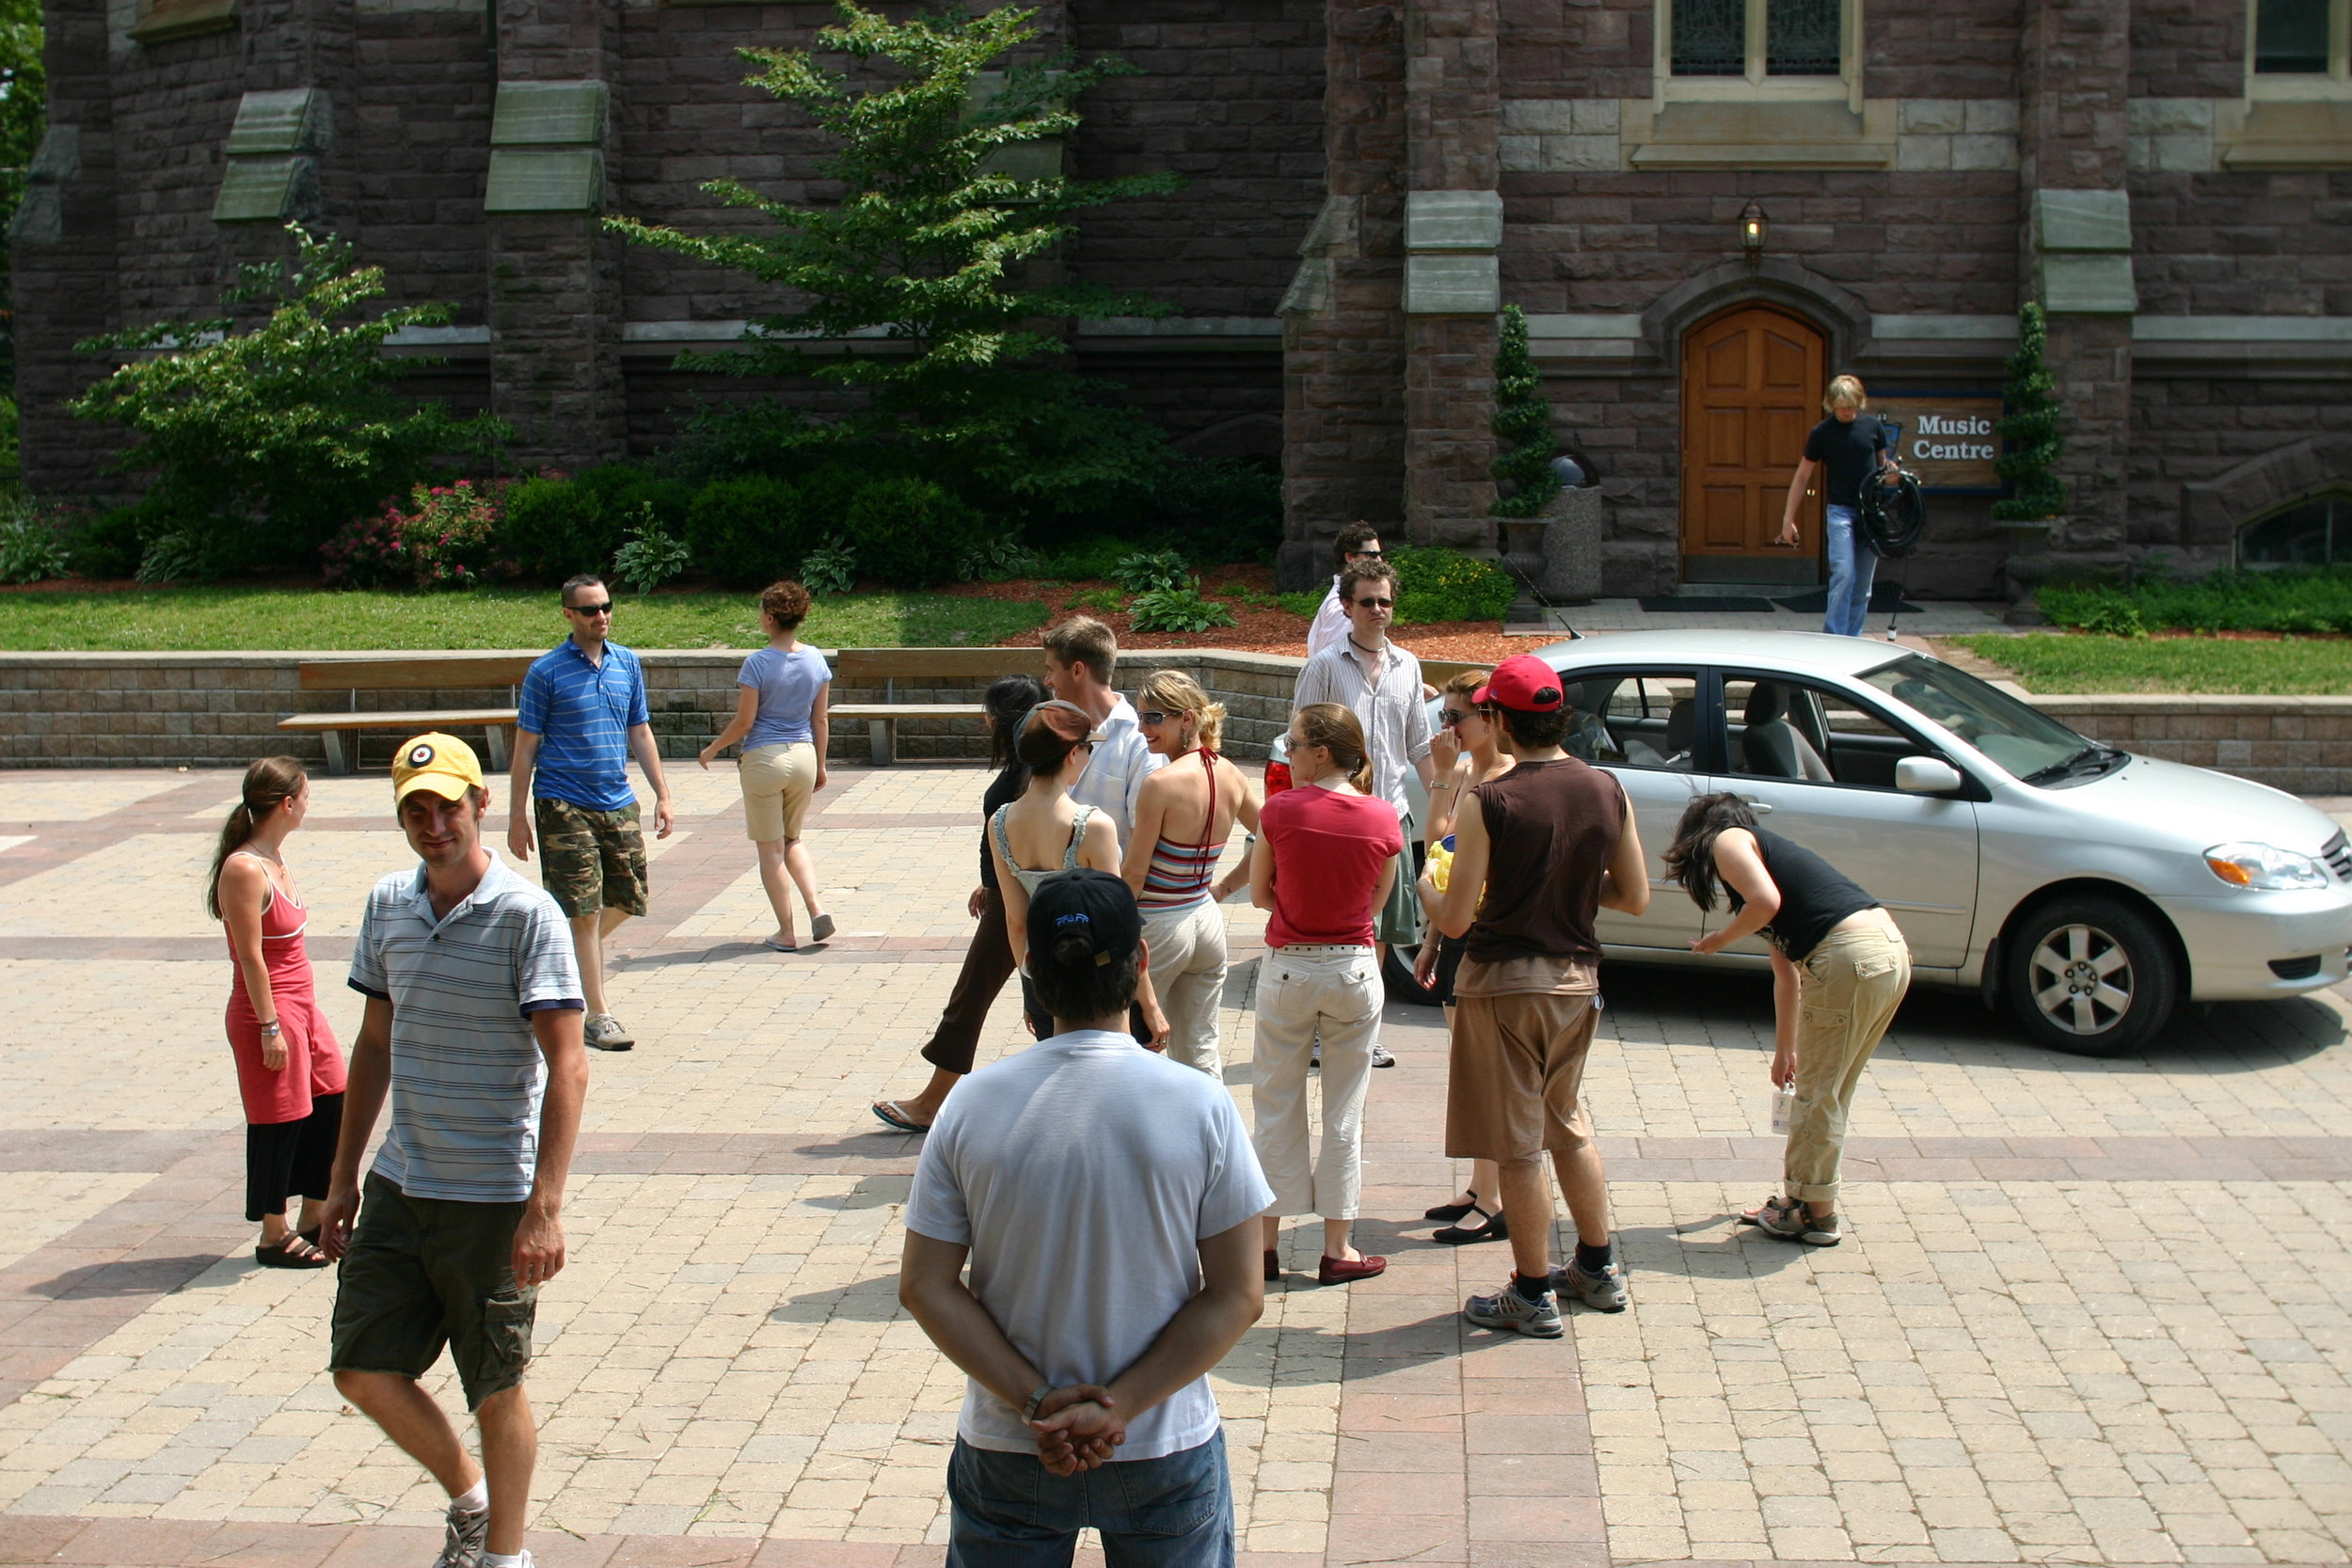 Full Company at rehearsal – first day on-site at the Royal St. George's College parking lot